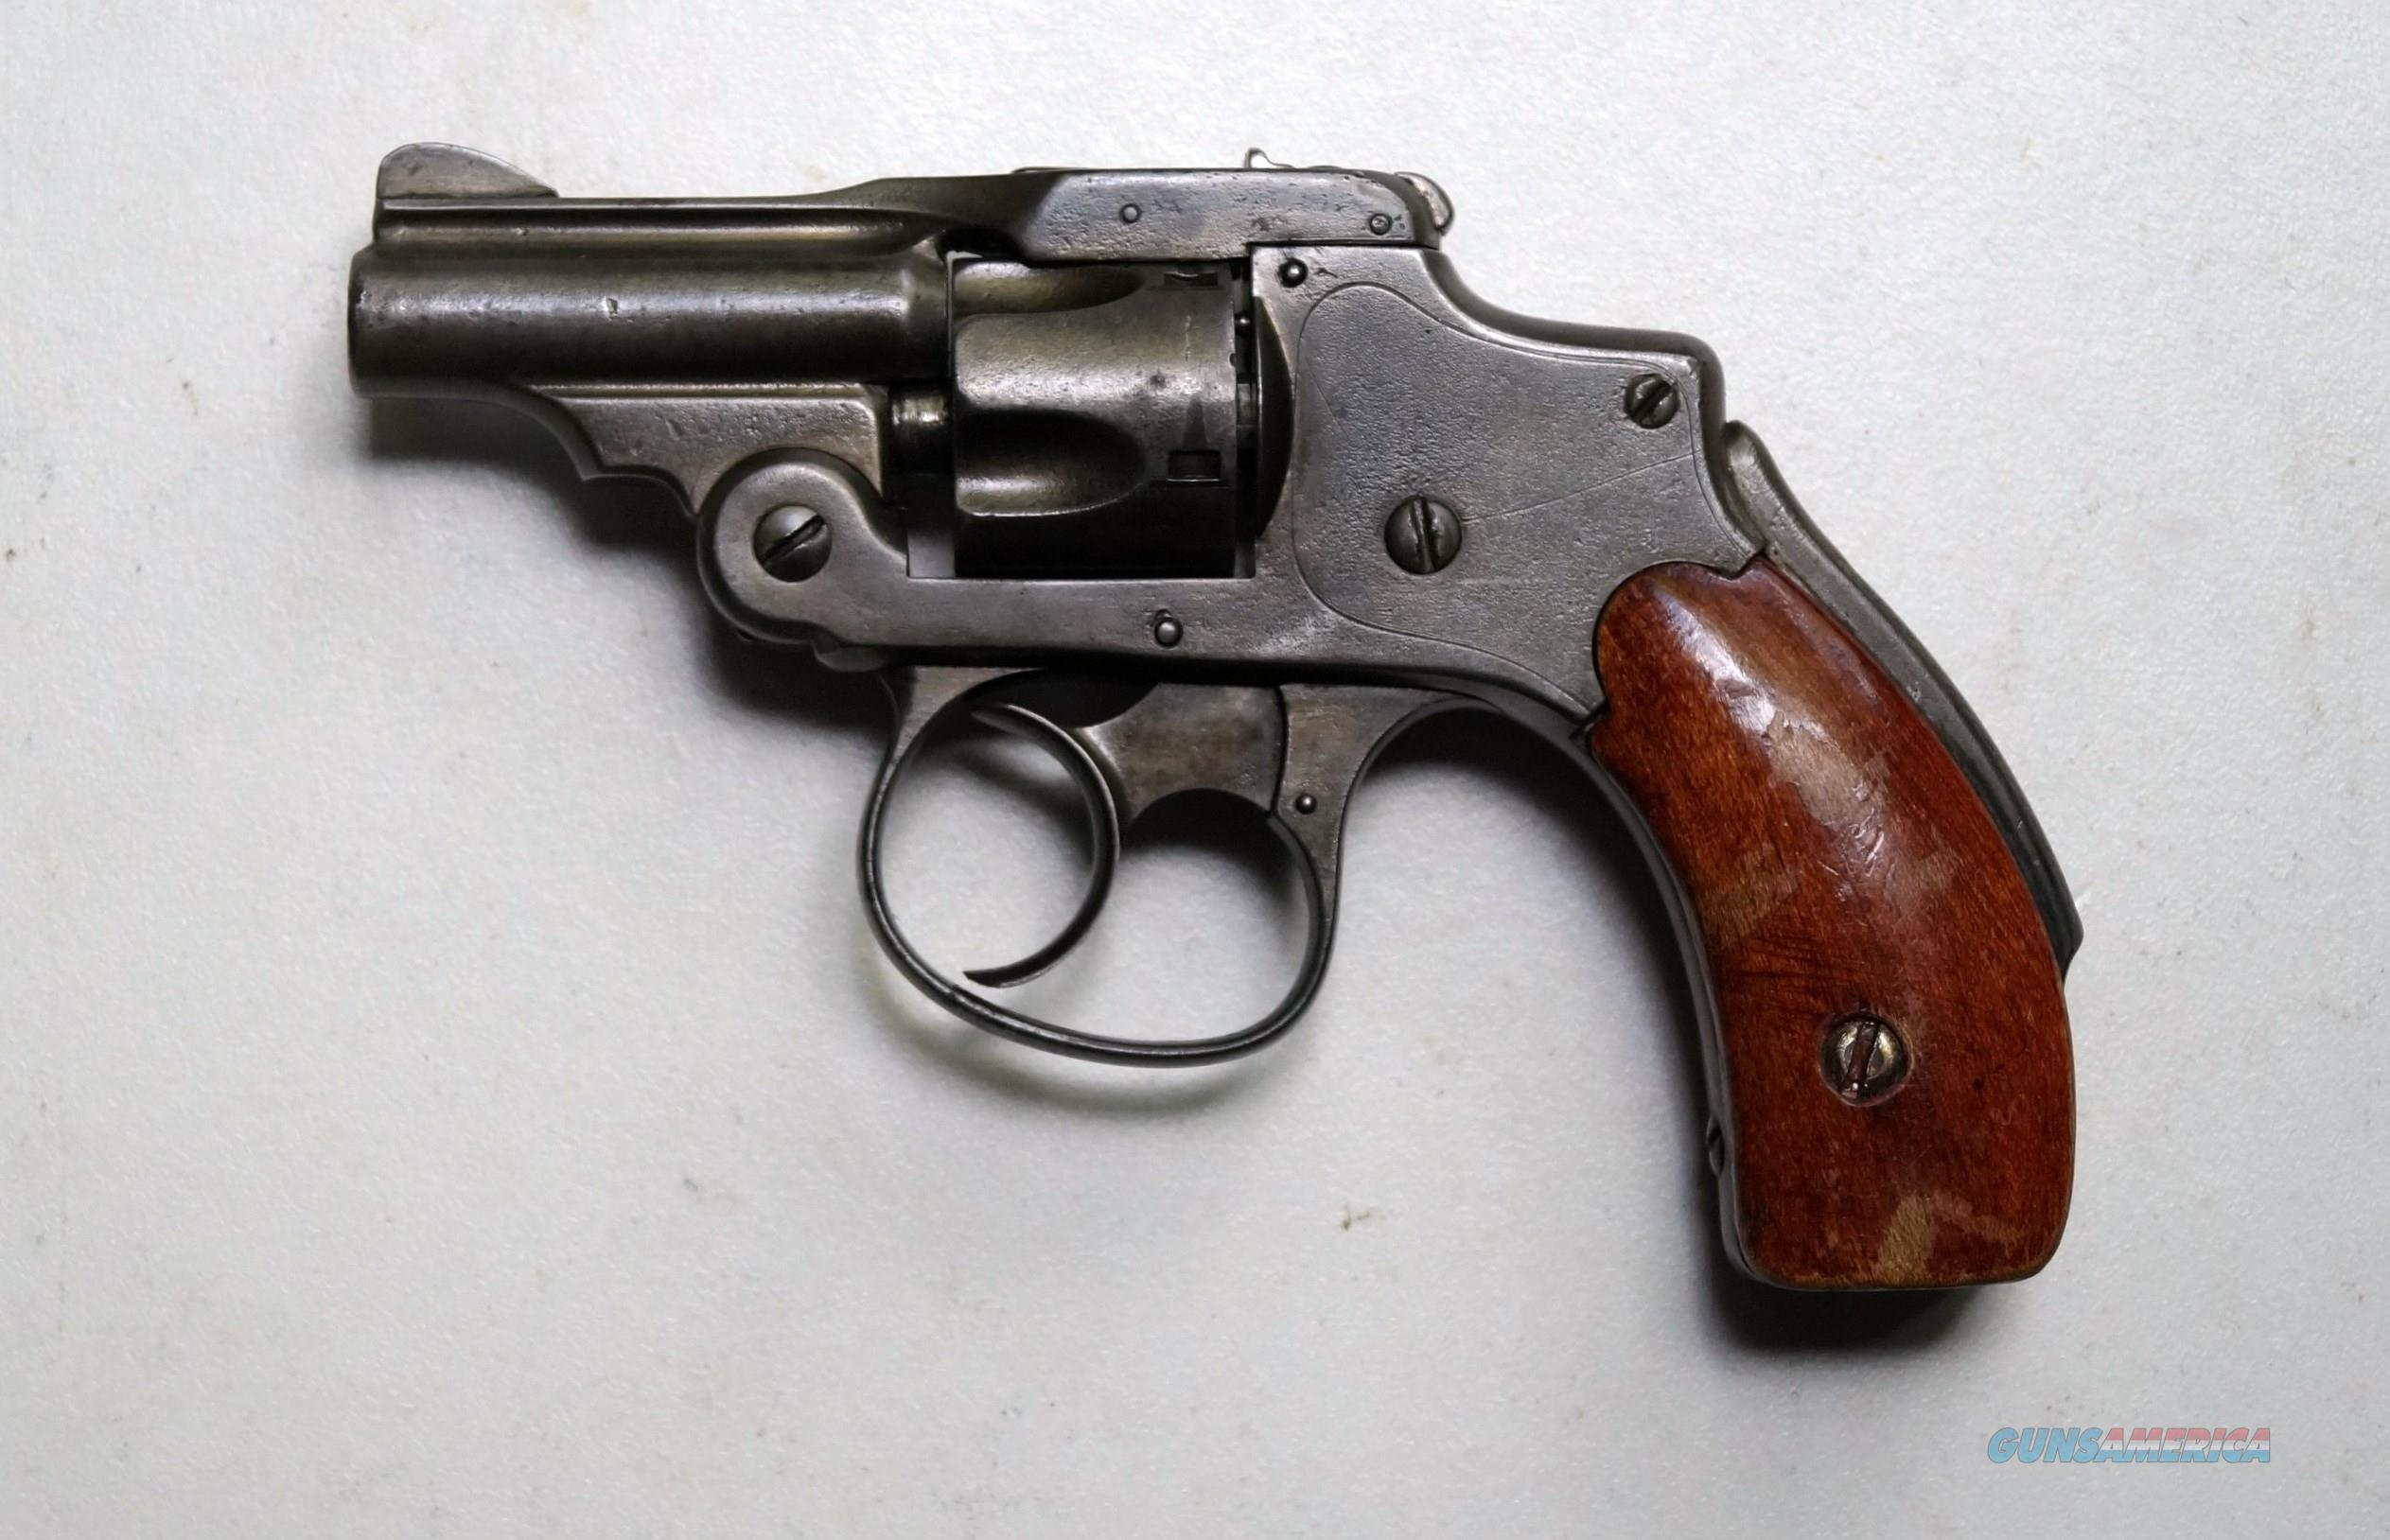 SMITH & WESSON NEW DEPARTURE MODEL - 1ST ISSUE - ANTIQUE  Guns > Pistols > Smith & Wesson Revolvers > Pre-1899